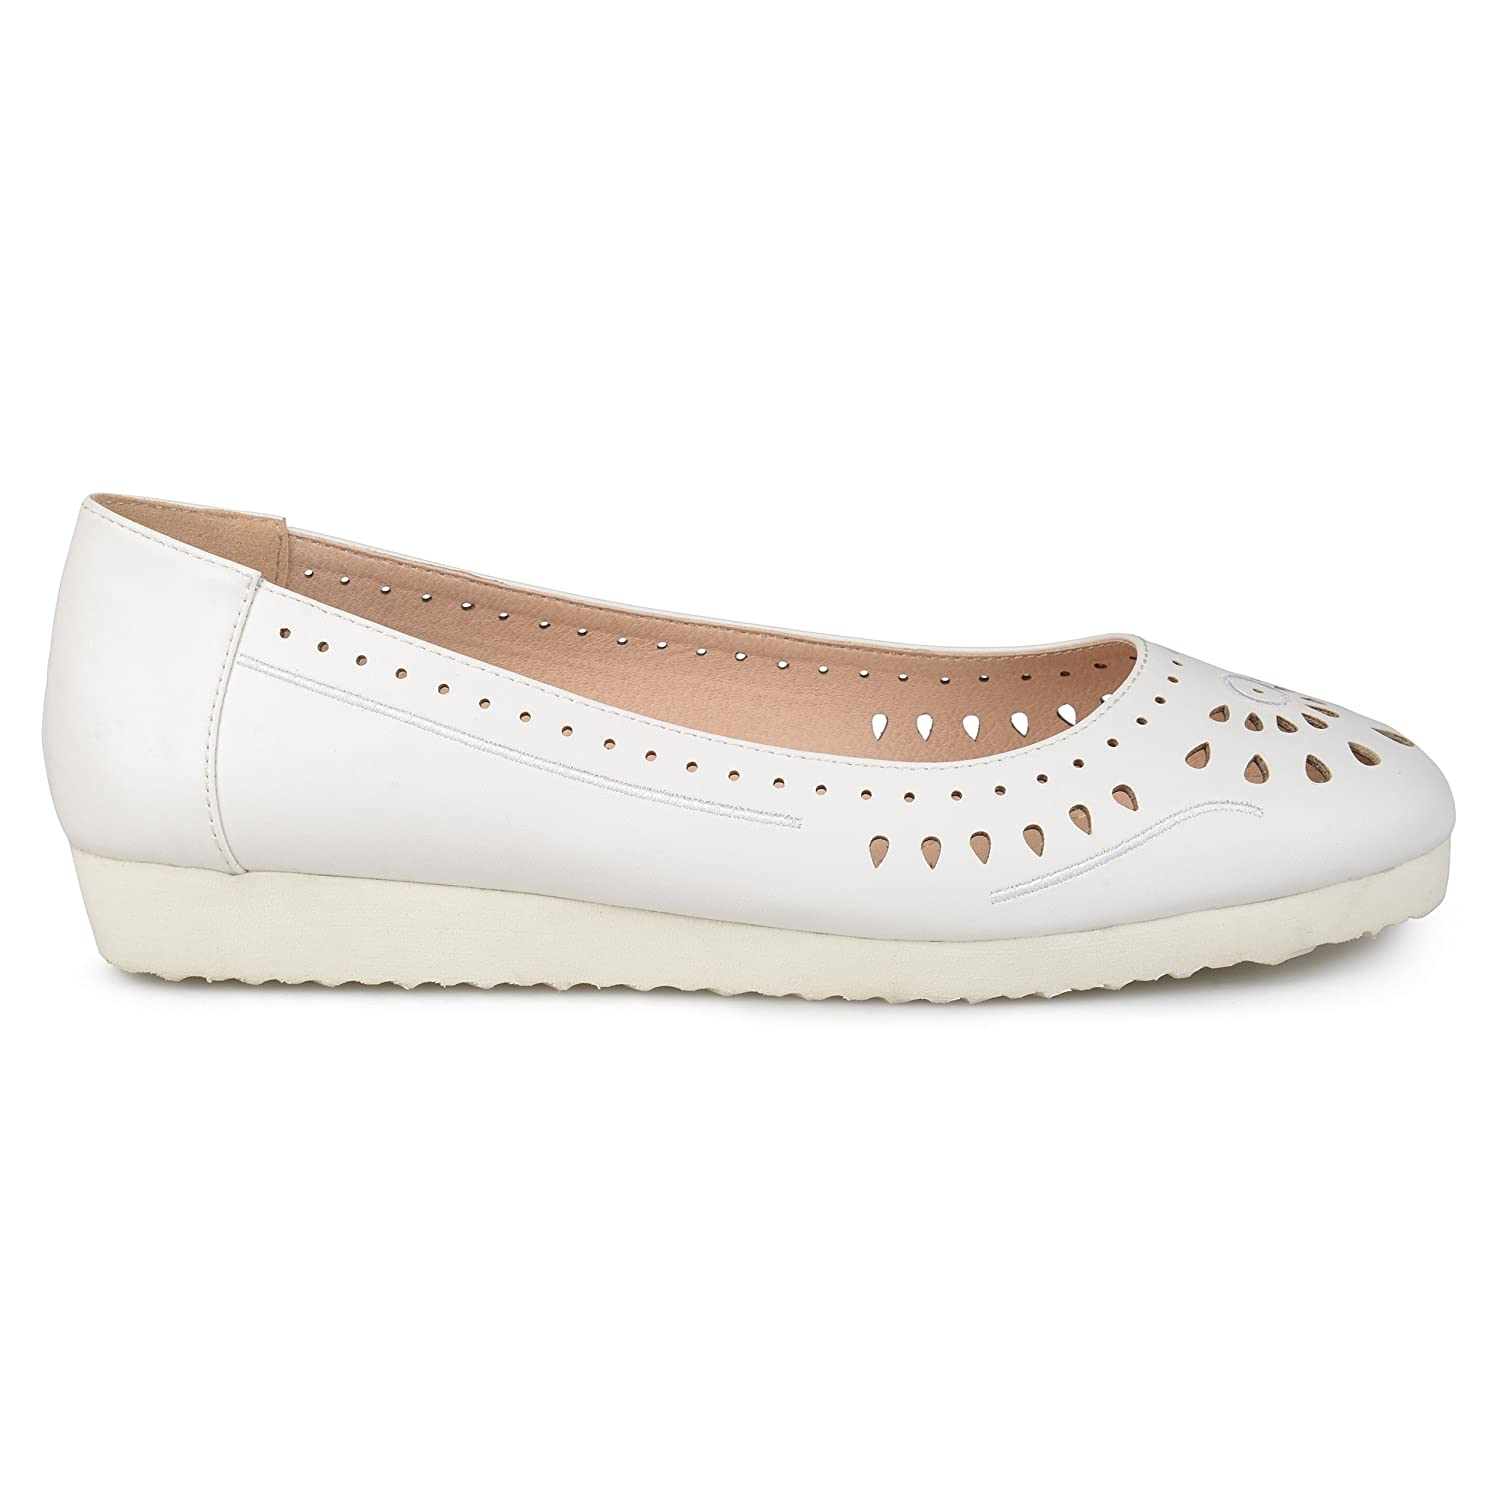 Brinley Co Womens Cyra Faux Leather Laser-Cut Comfort-Sole Embroidered Lightweight Flats B0757348LQ 6 B(M) US|White